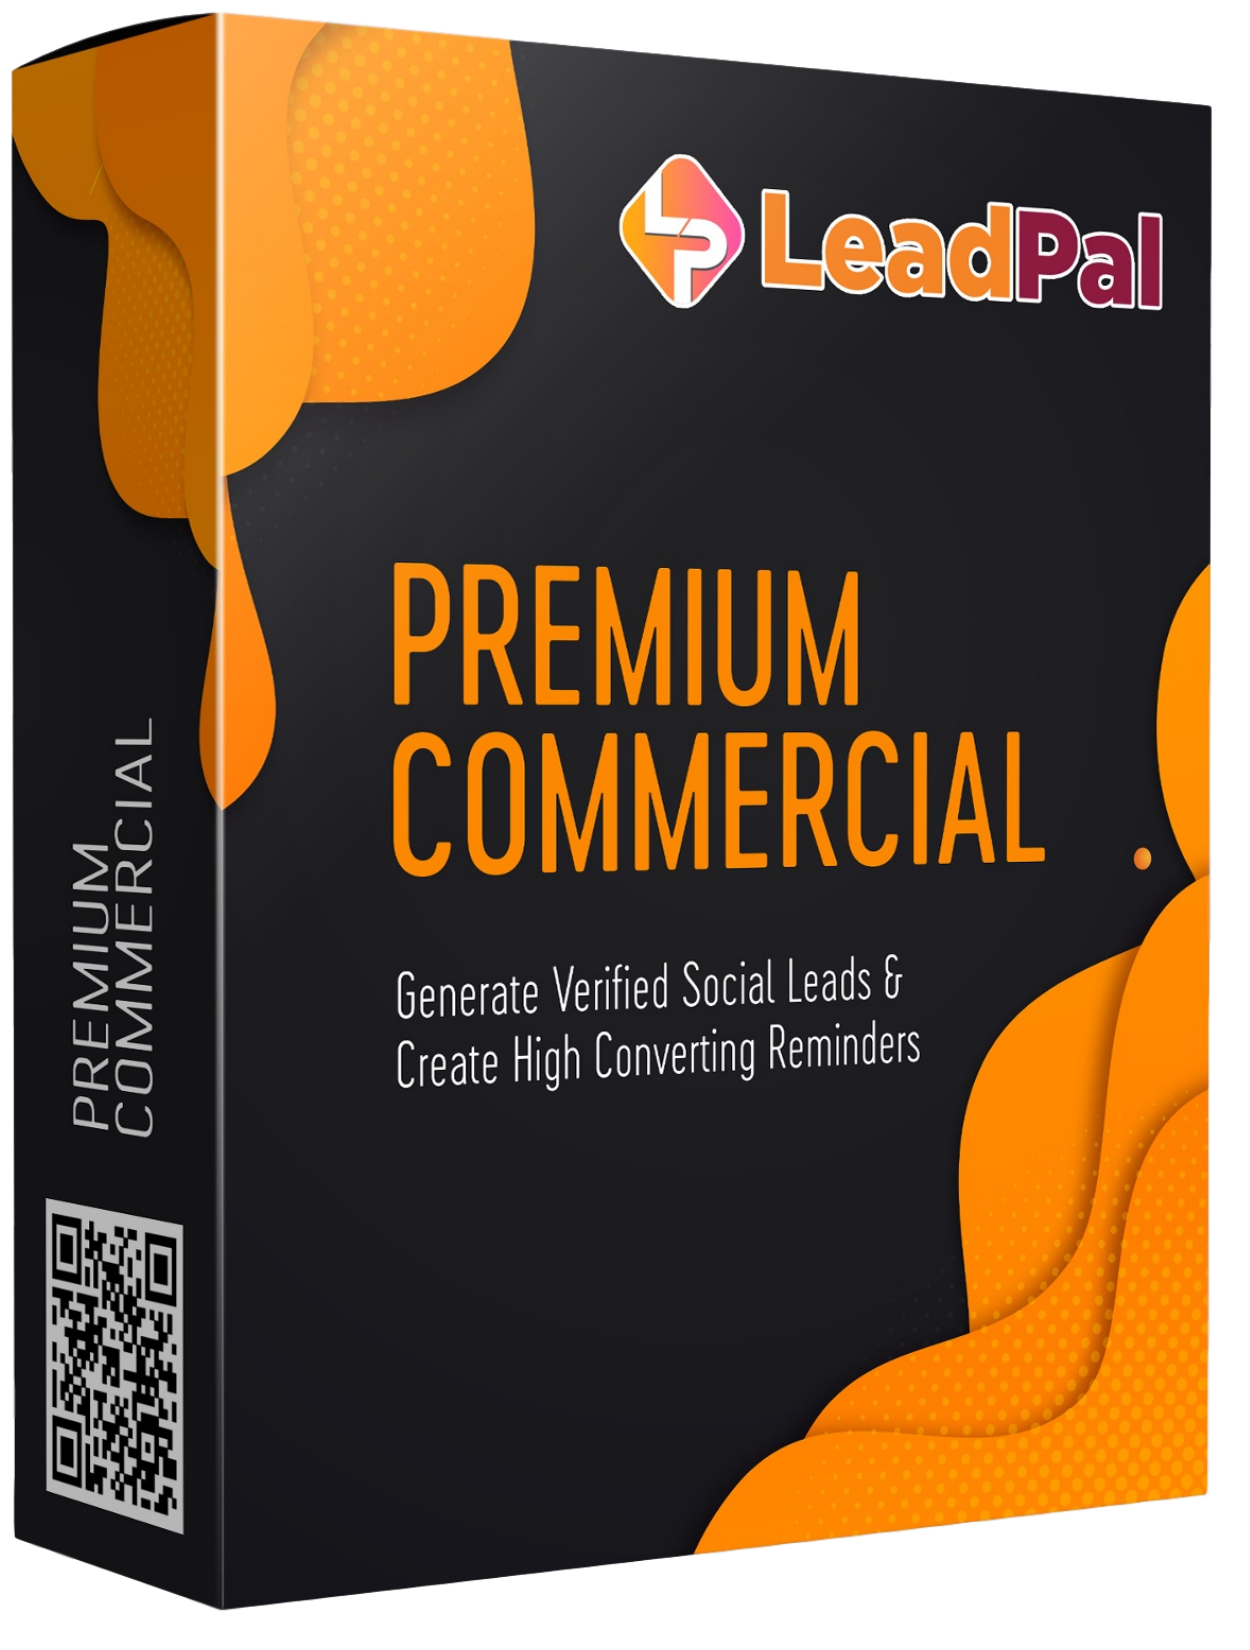 LeadPal Review